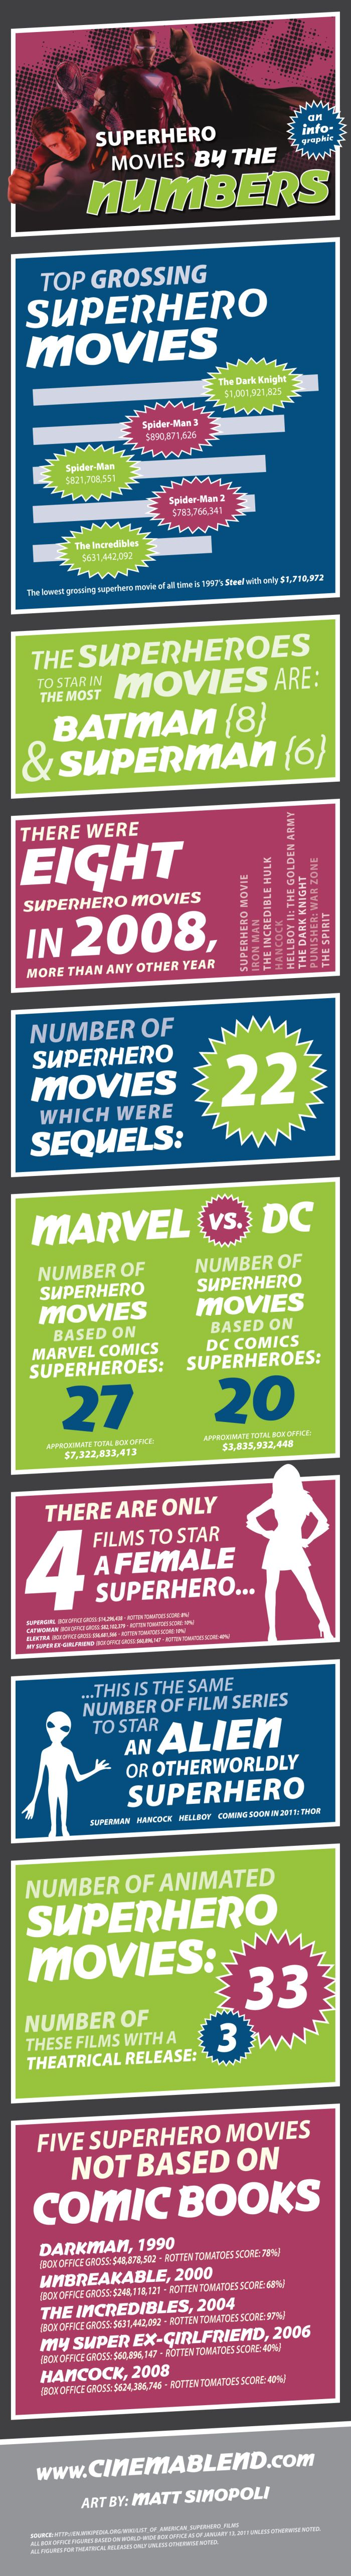 Superhero Movies By The Numbers (infographic)